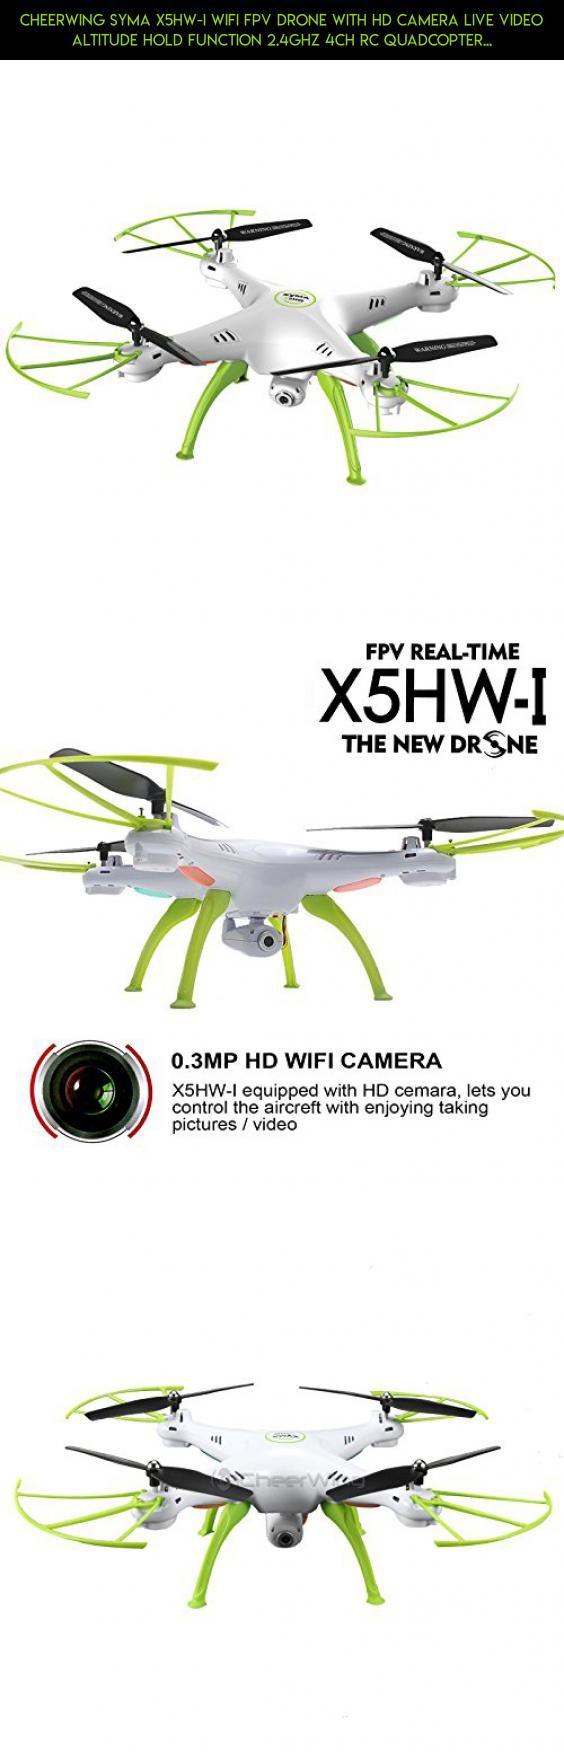 Cheerwing Syma X5HW-I Wifi FPV Drone with HD Camera Live Video ...